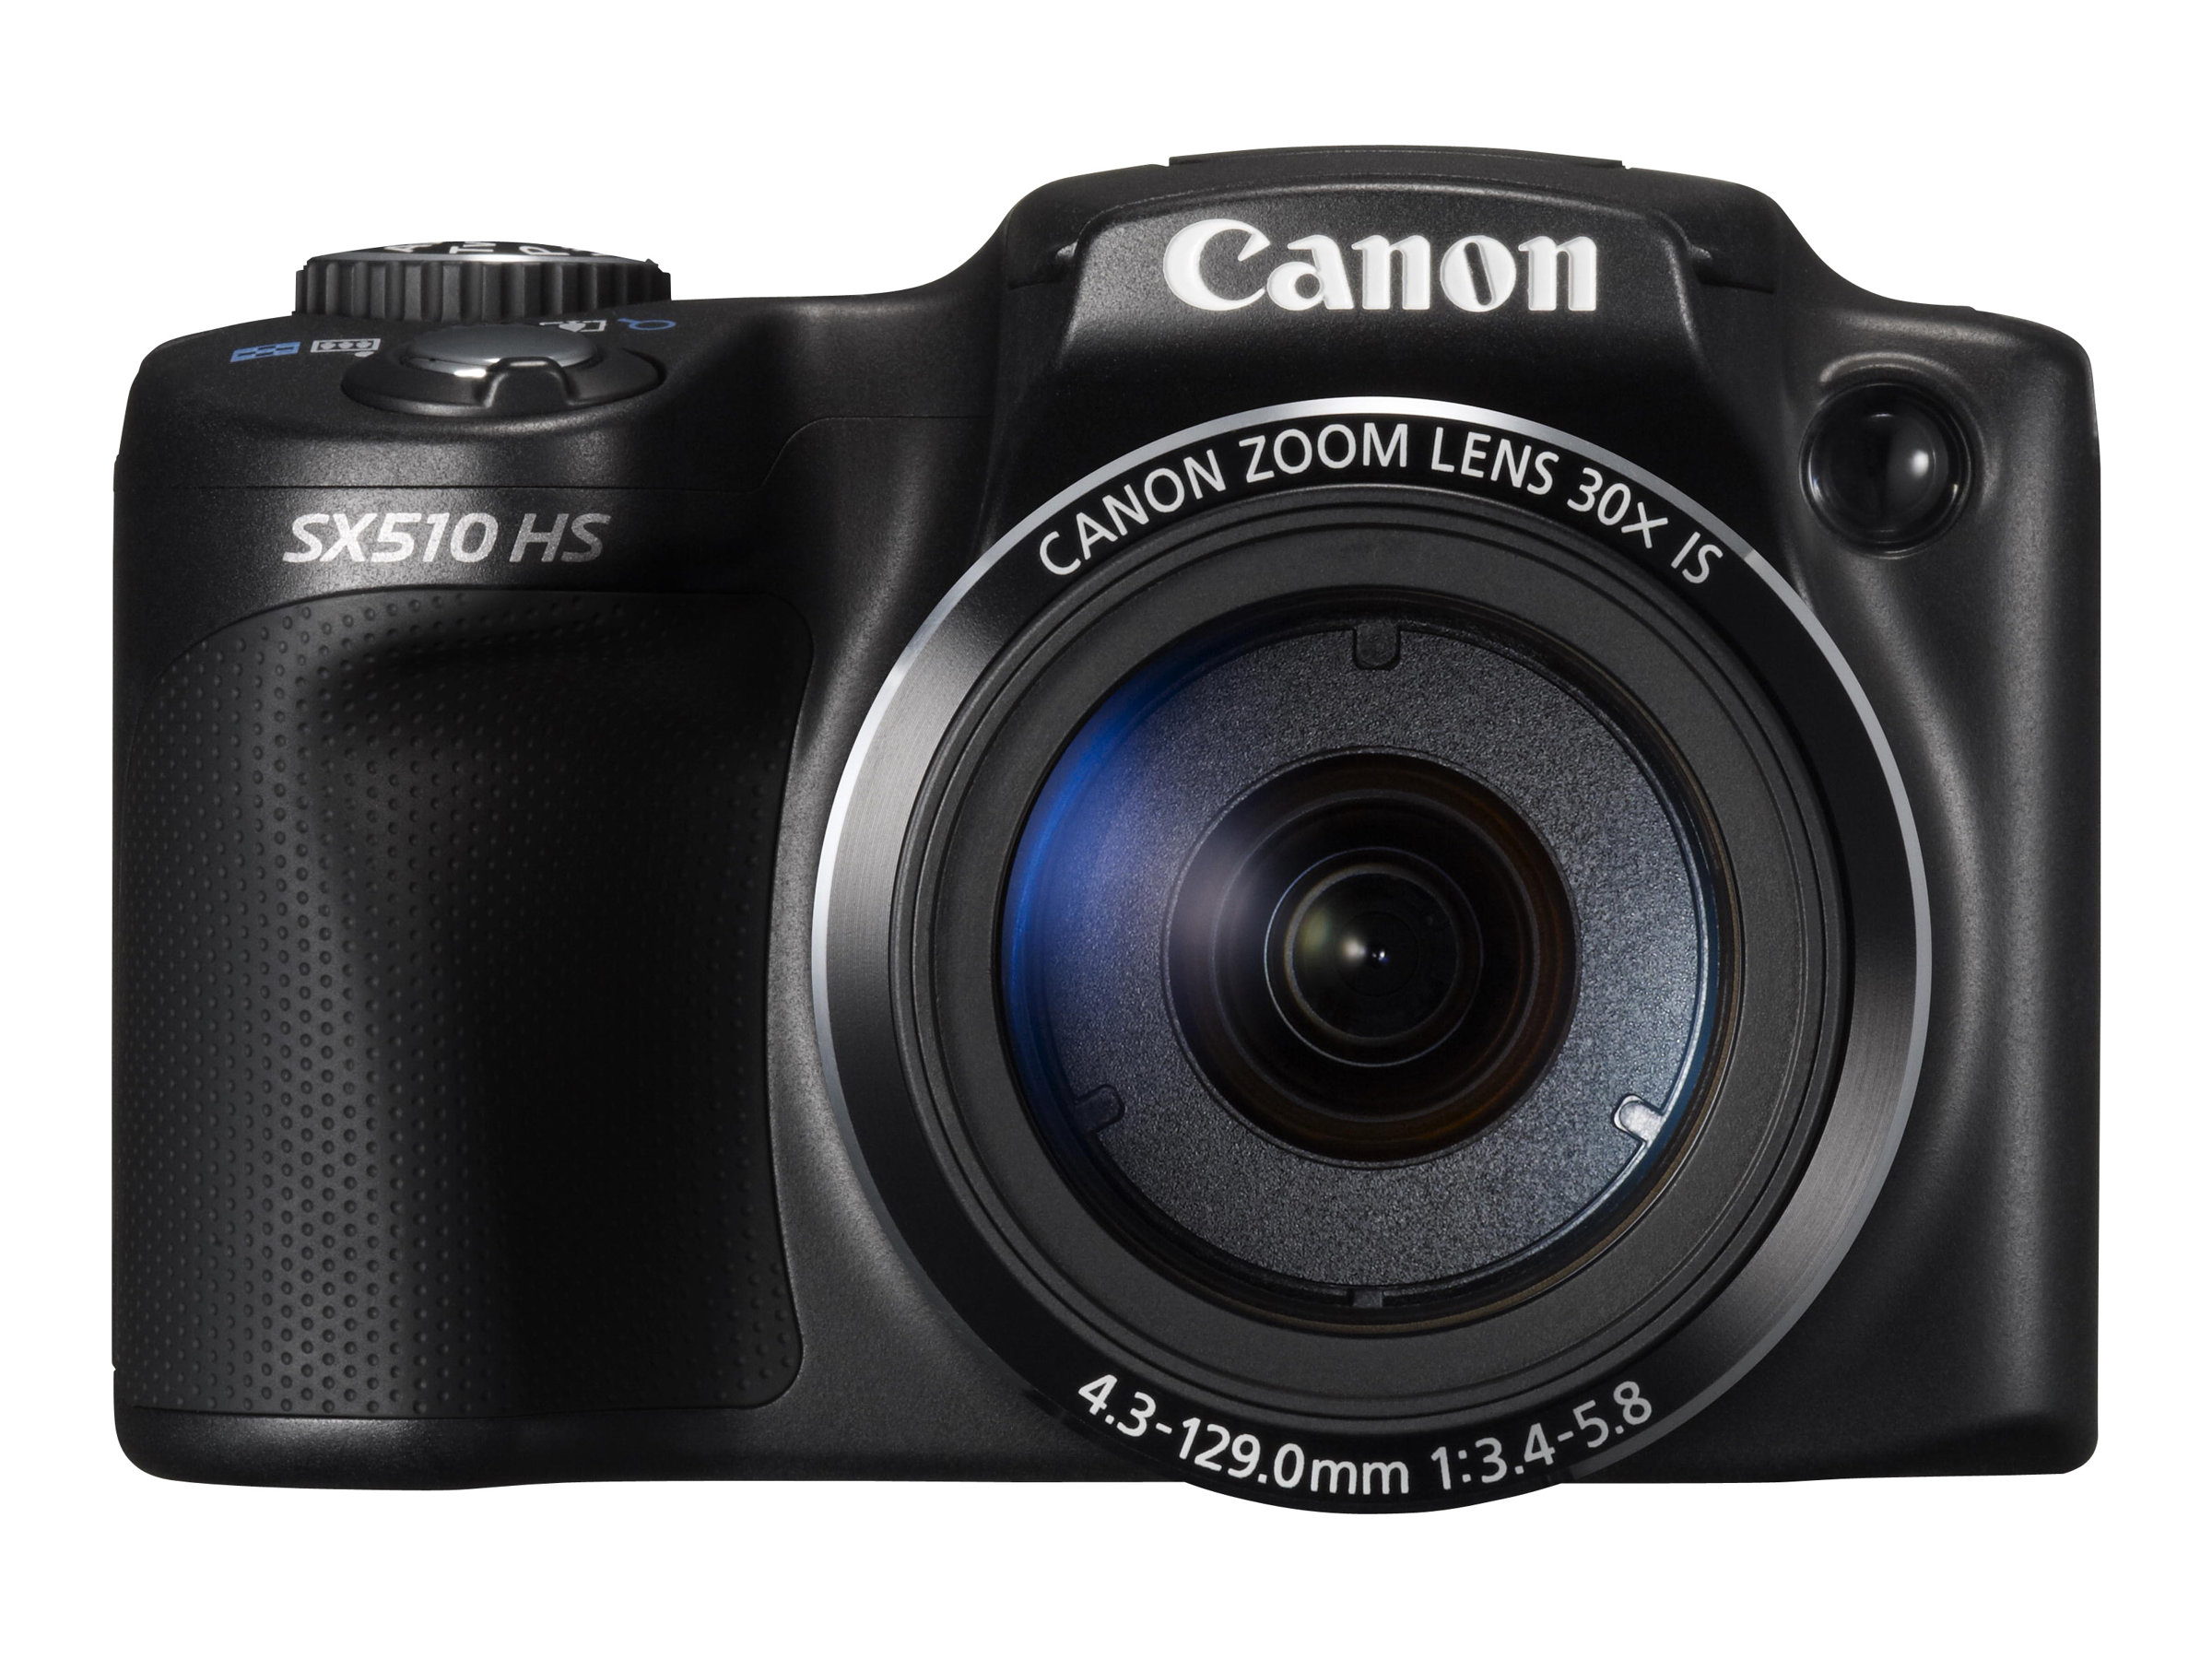 Canon 12.1 MP PowerShot Digital Camera SX510 HS